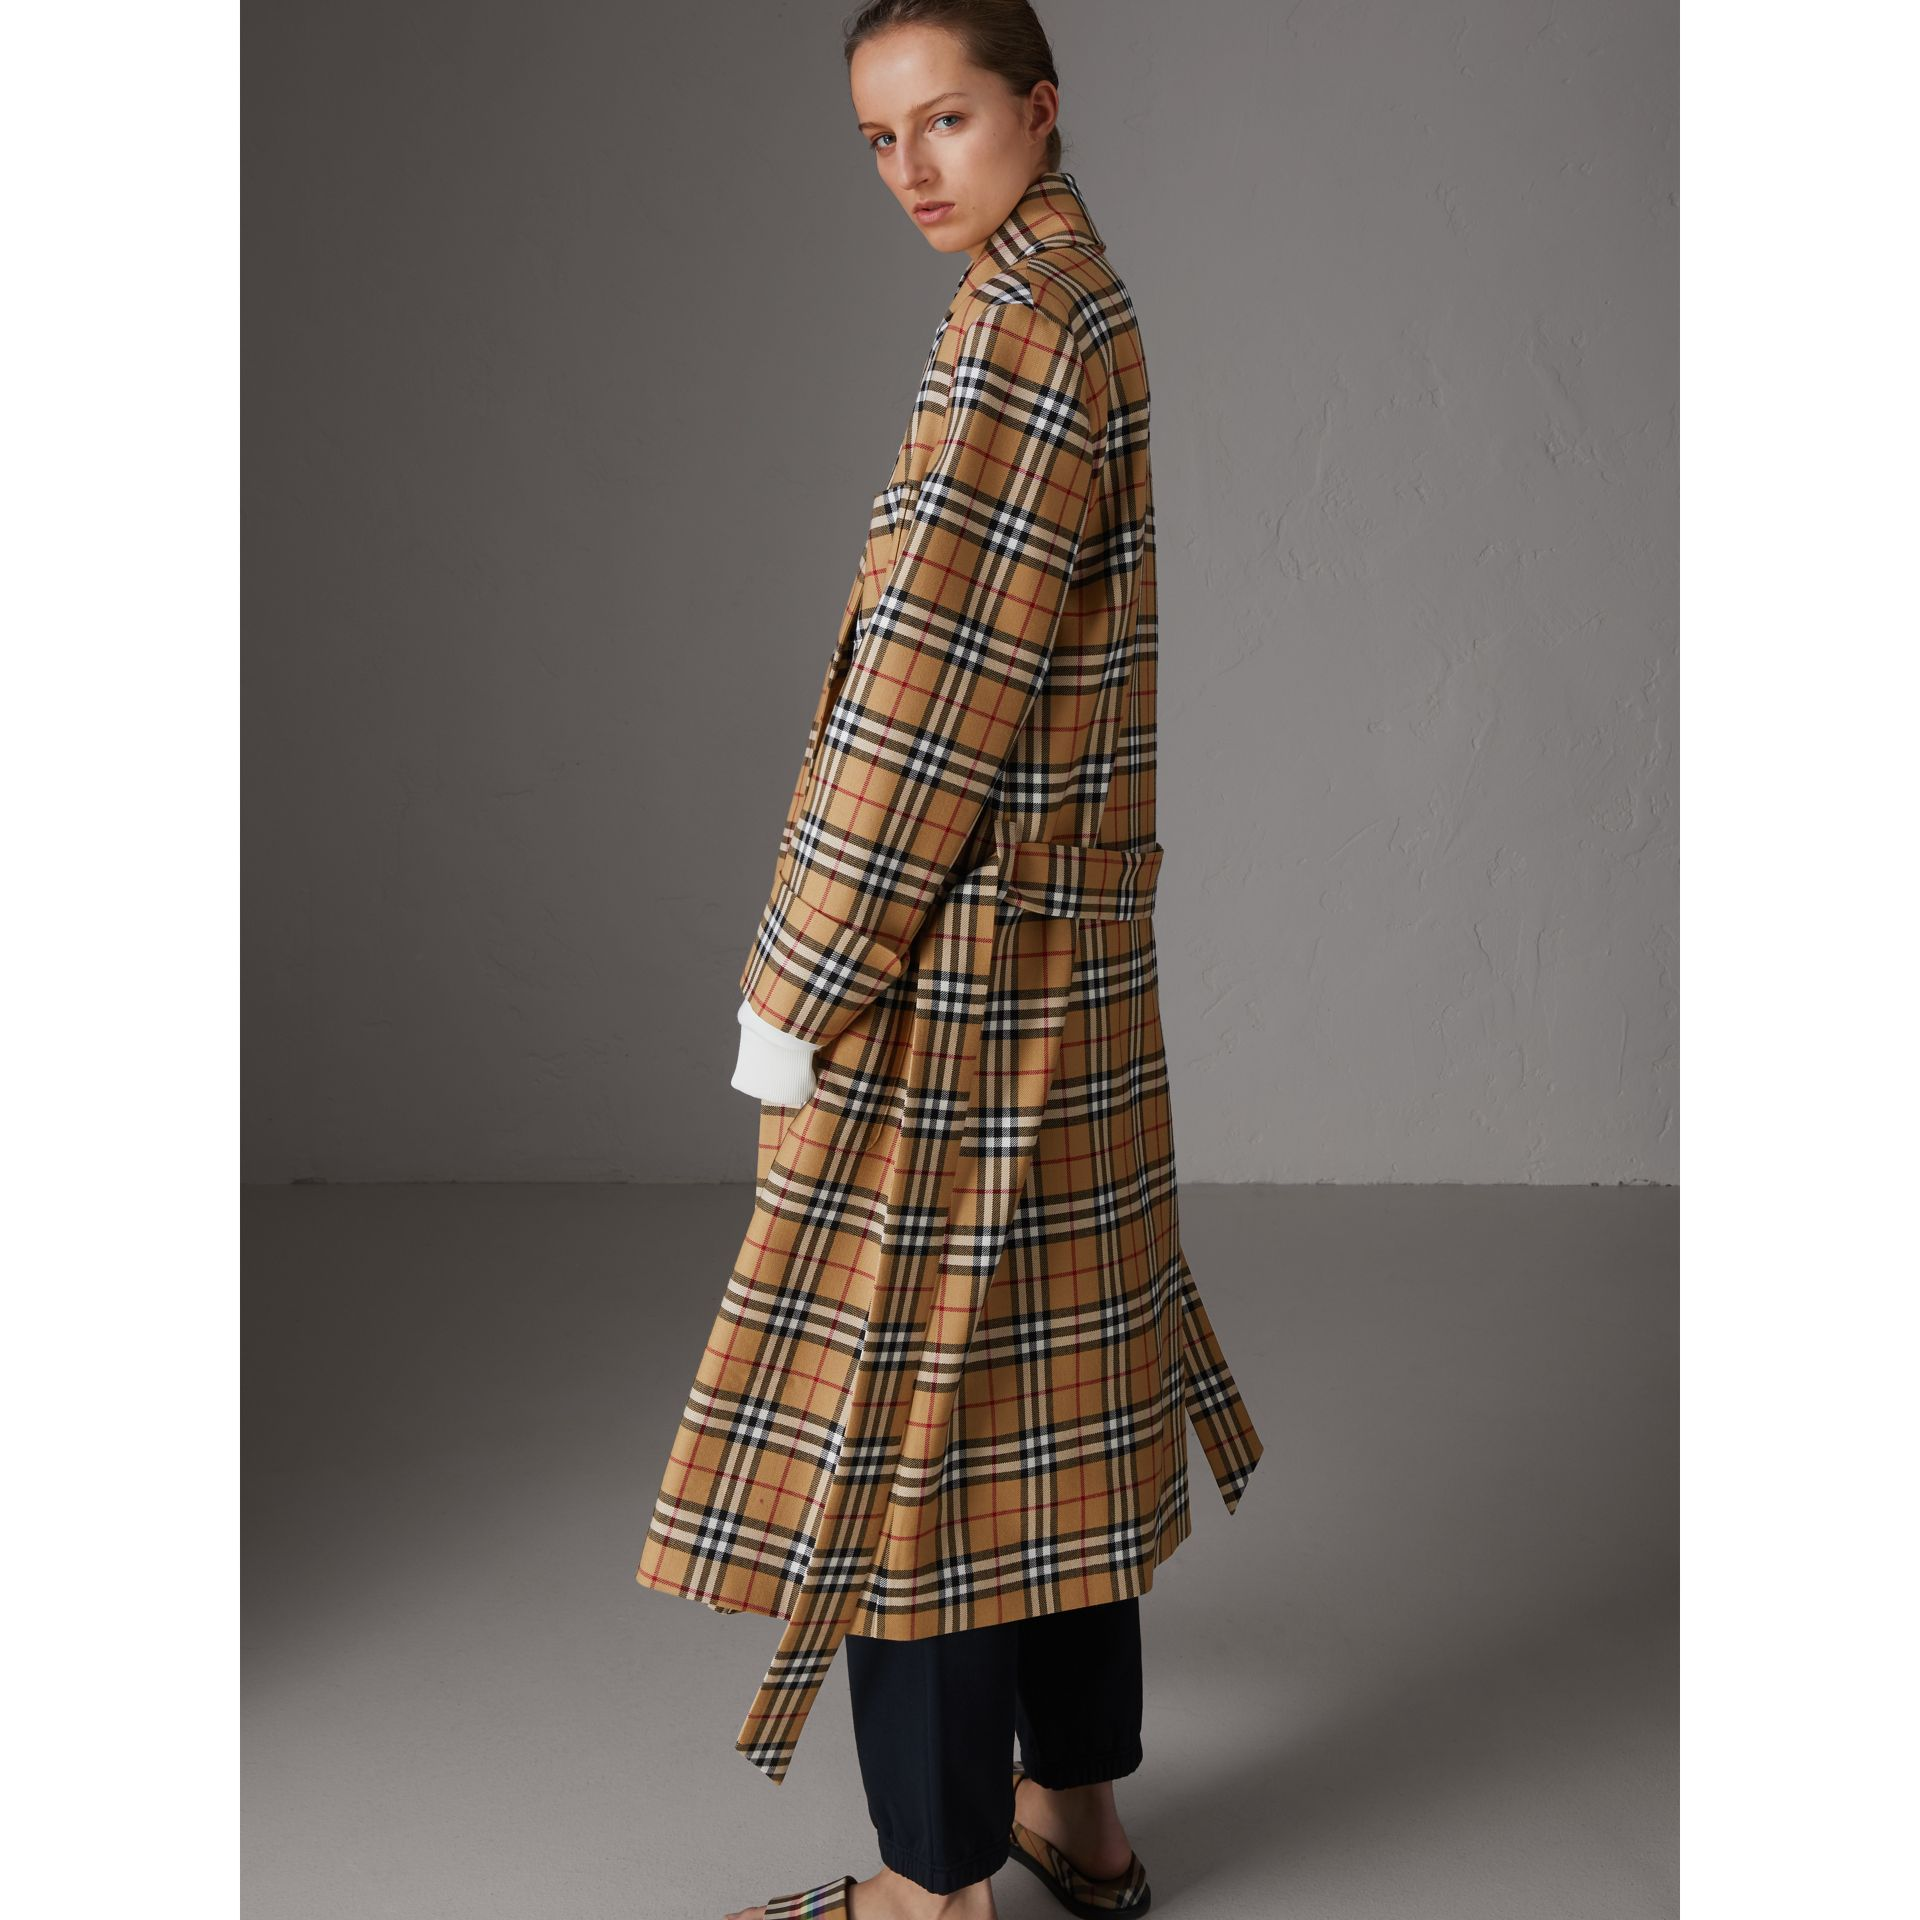 Manteau peignoir à motif Vintage check revisité (Jaune Antique) - Femme | Burberry Canada - photo de la galerie 2